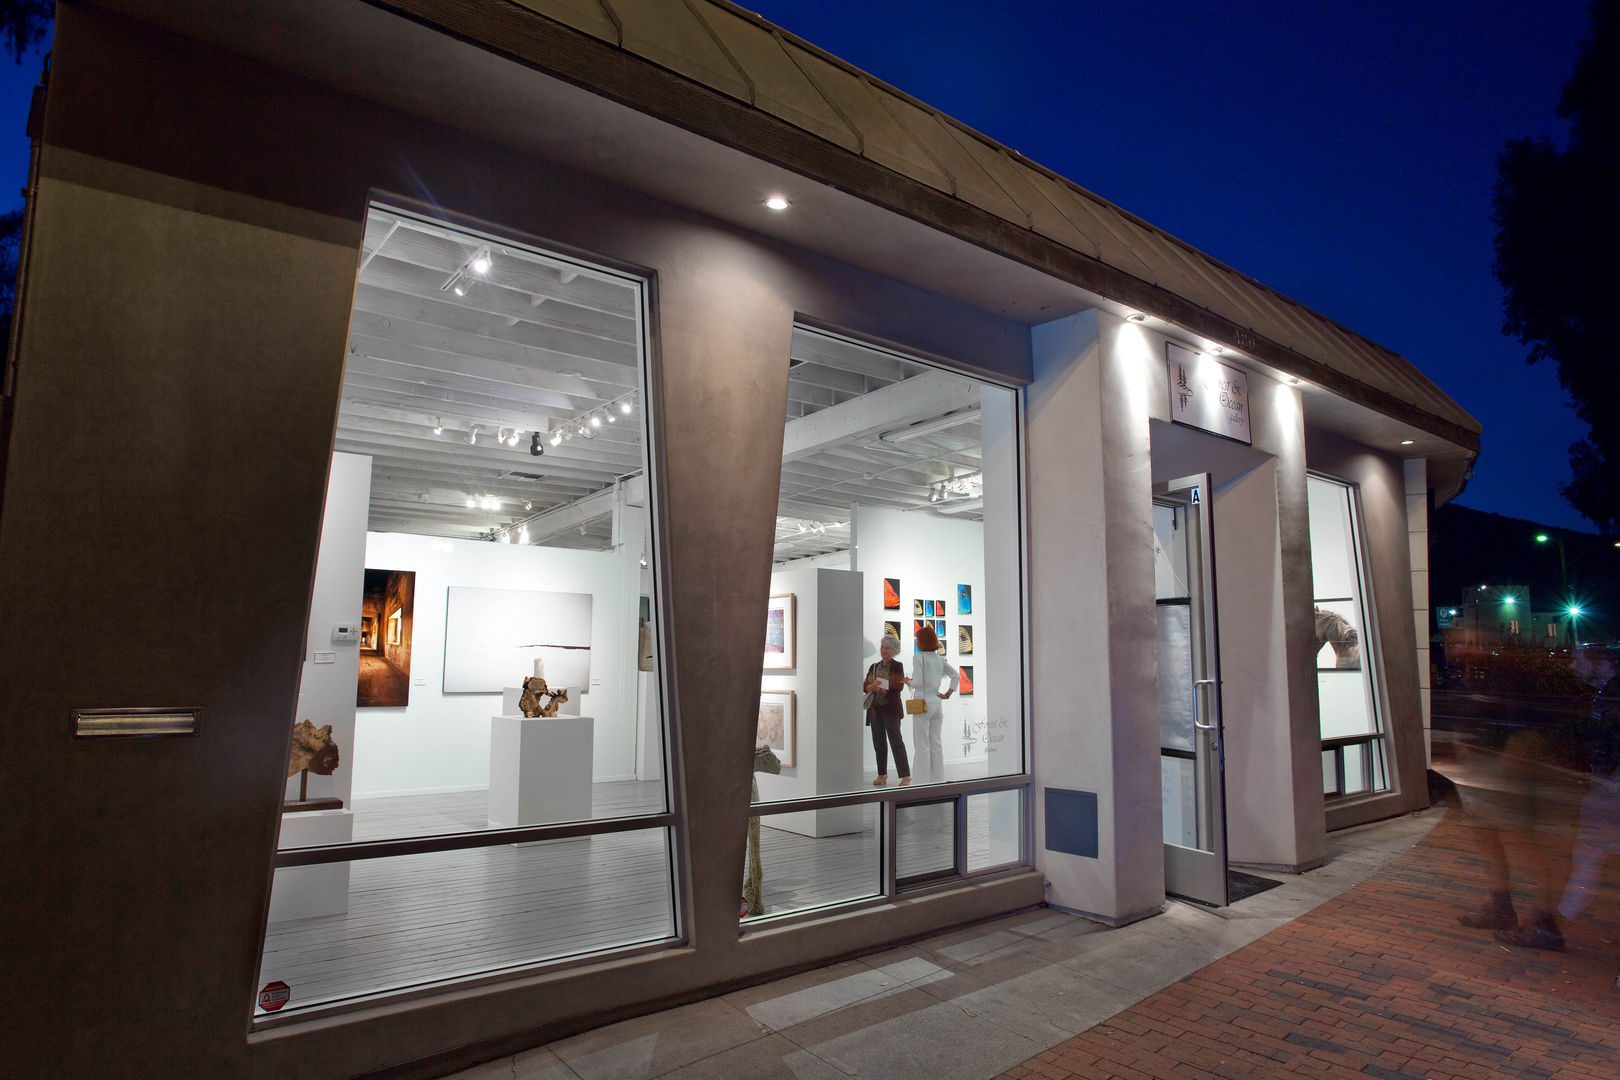 Robert celebrates his sixth year of representation by Forest Ocean  Gallery in Laguna Beach, CA.  This fine gallery, located...